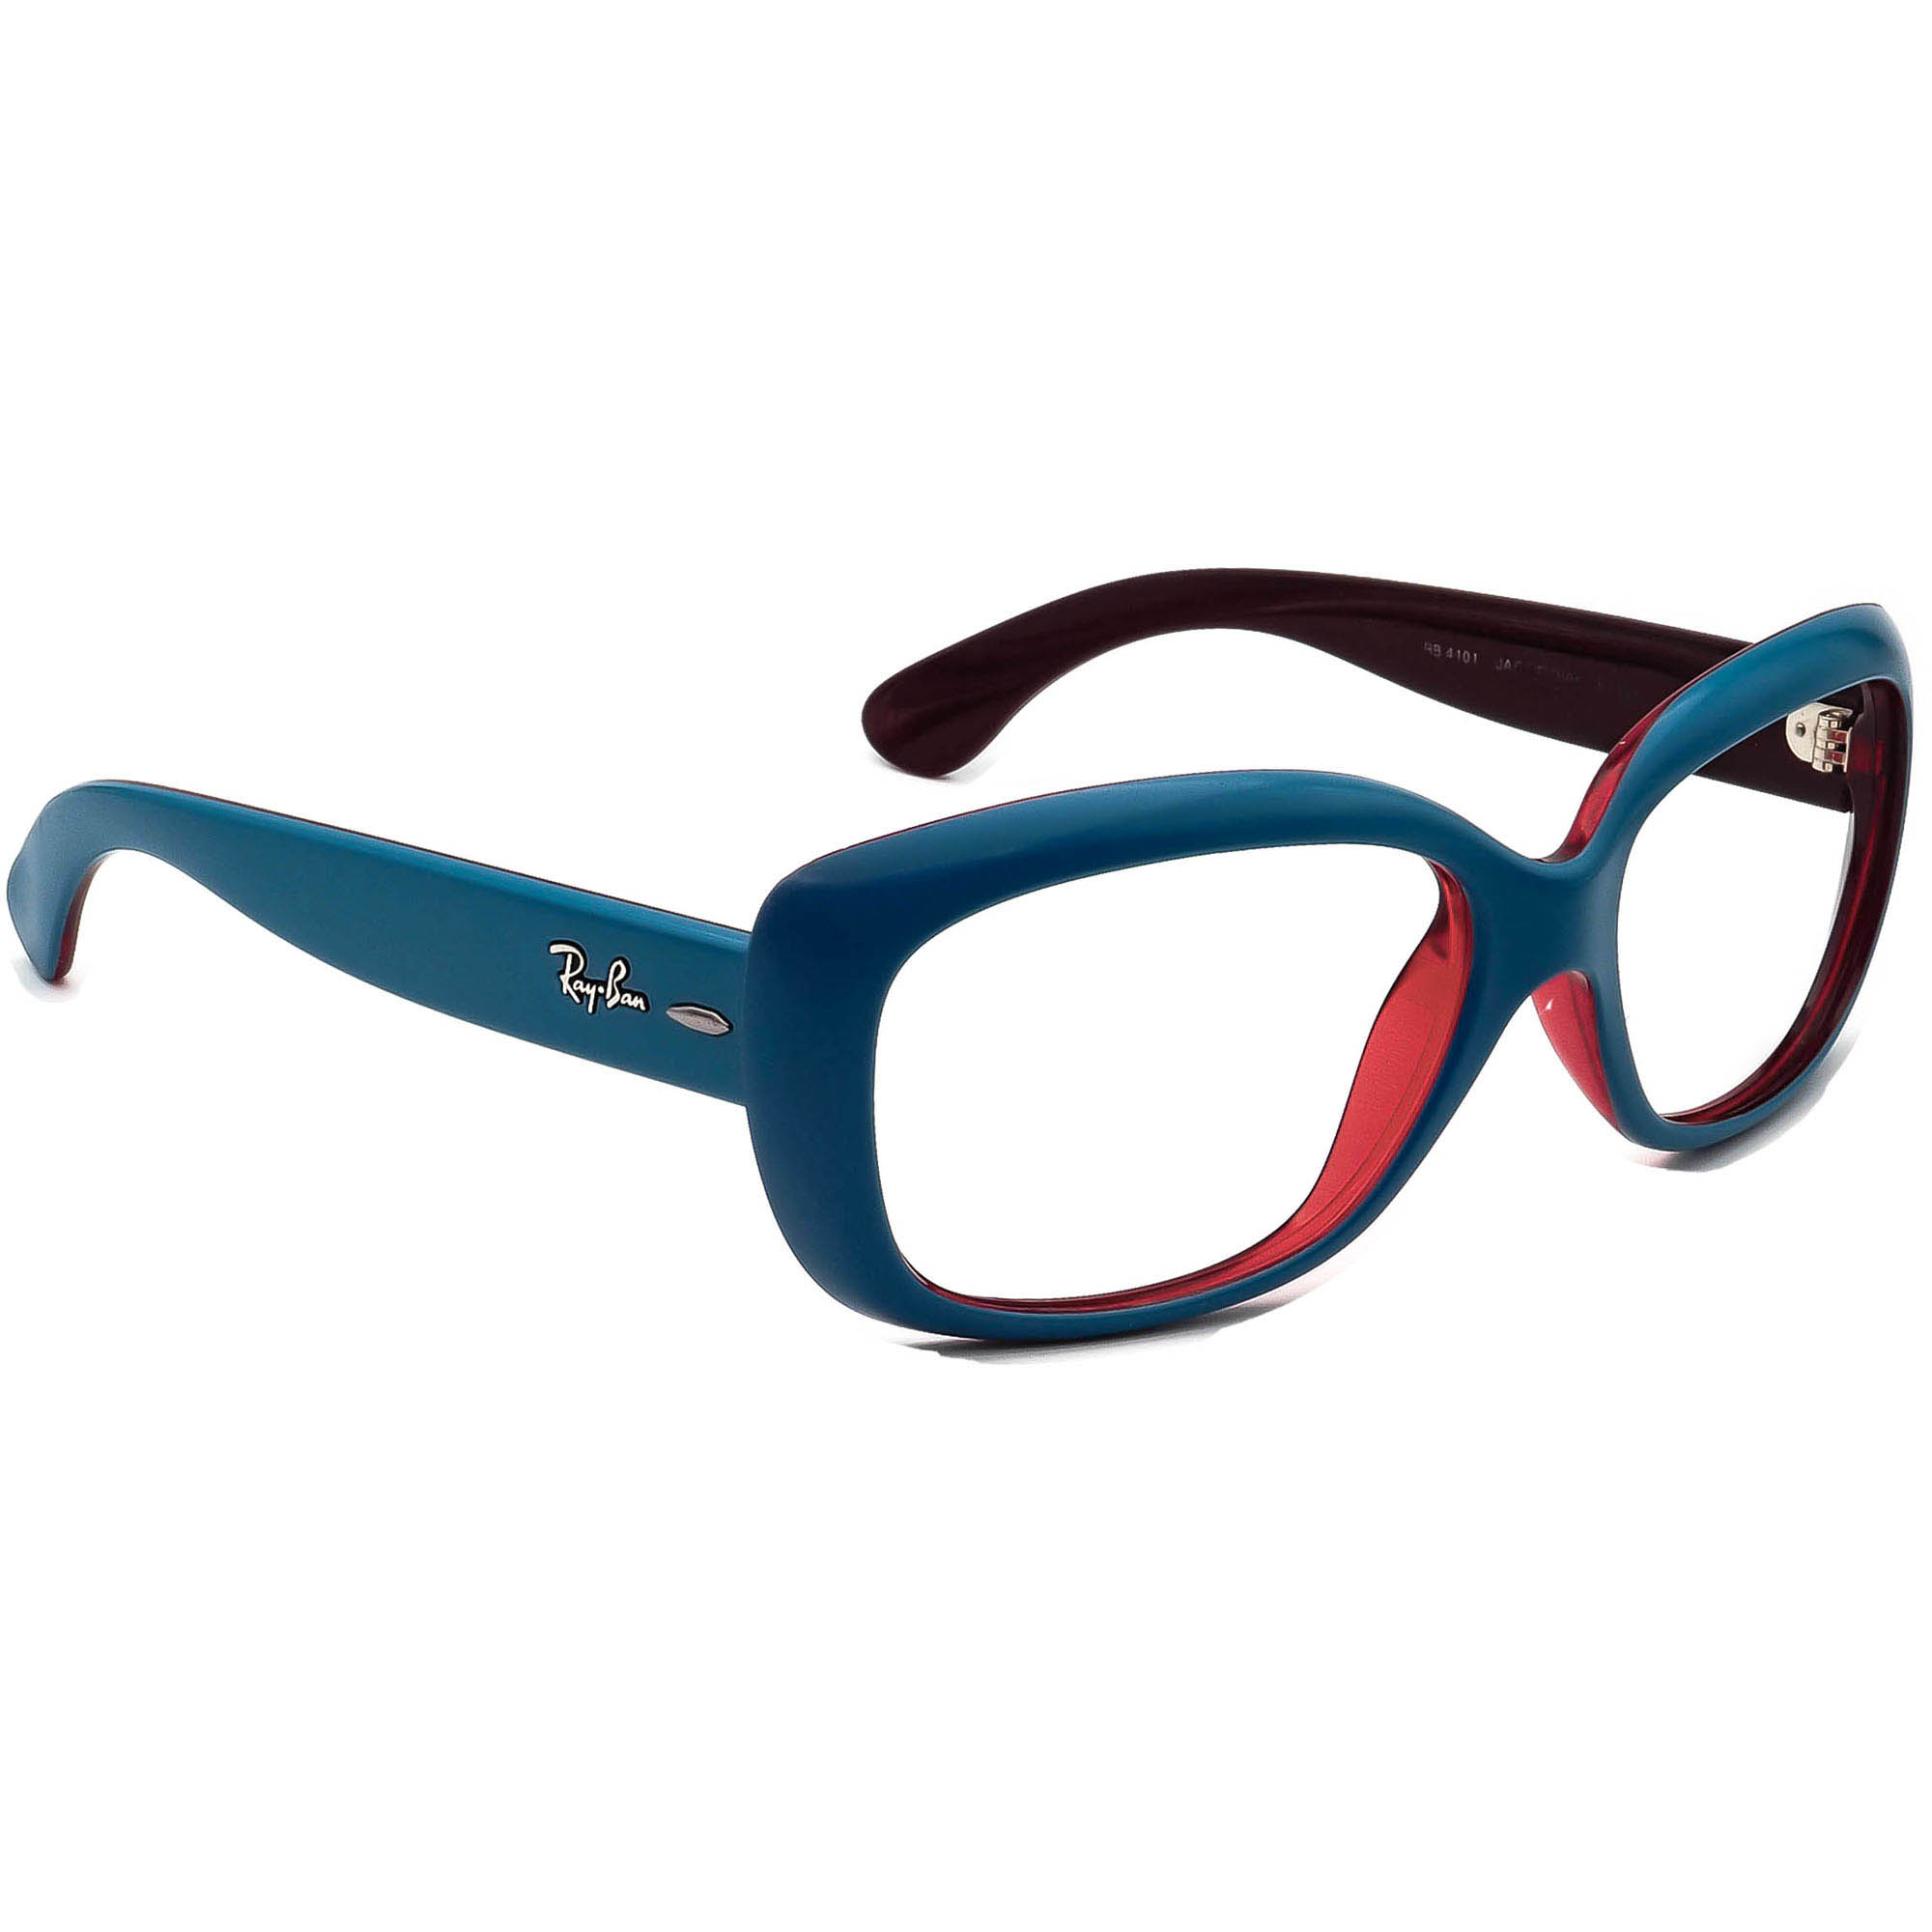 Ray-Ban RB 4101 Jackie Ohh Sunglasses Frame Only